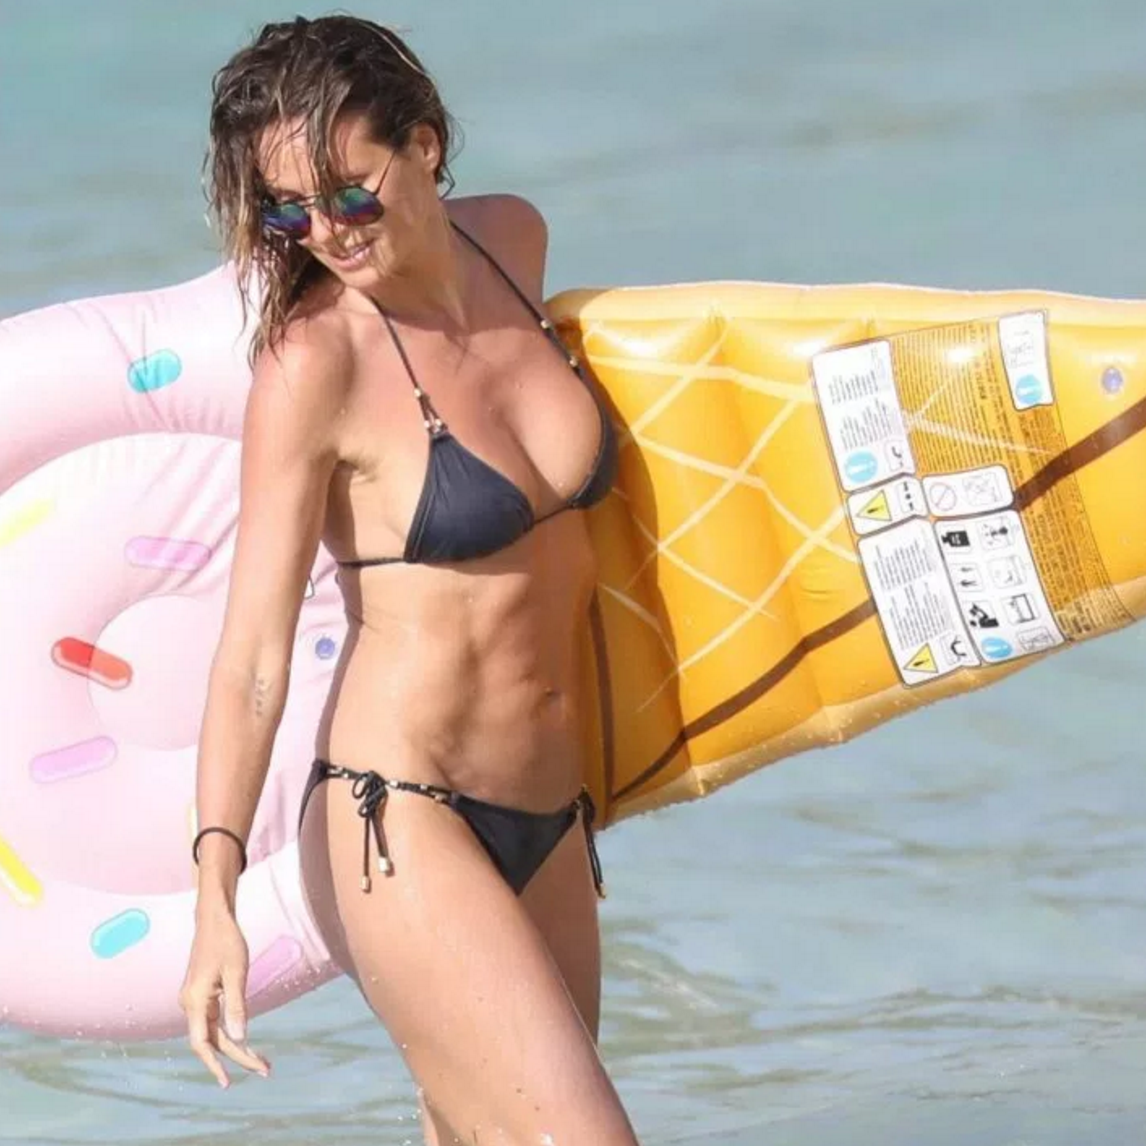 Heidi Klum Leaves Little to the Imagination in Her Skimpy Two Piece Bikini